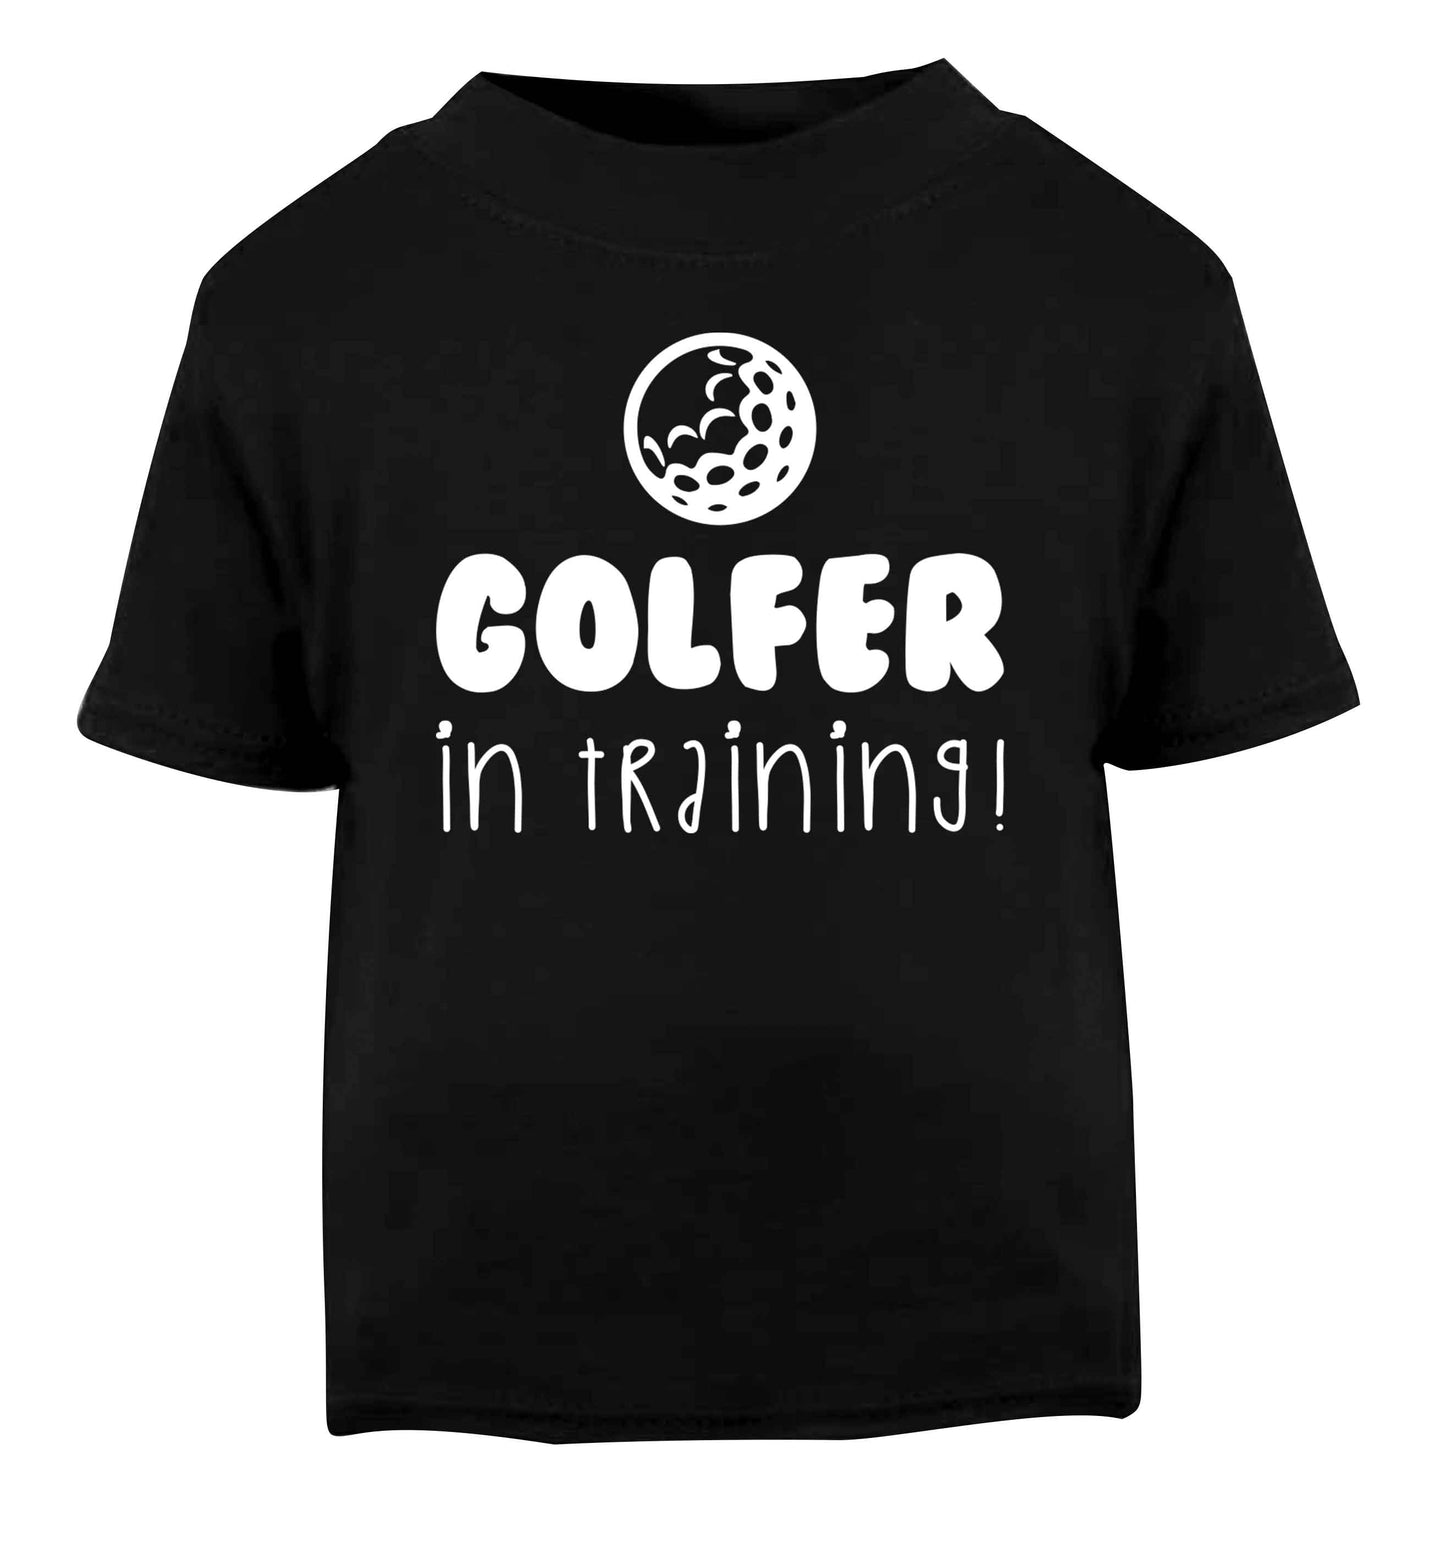 Golfer in training Black Baby Toddler Tshirt 2 years